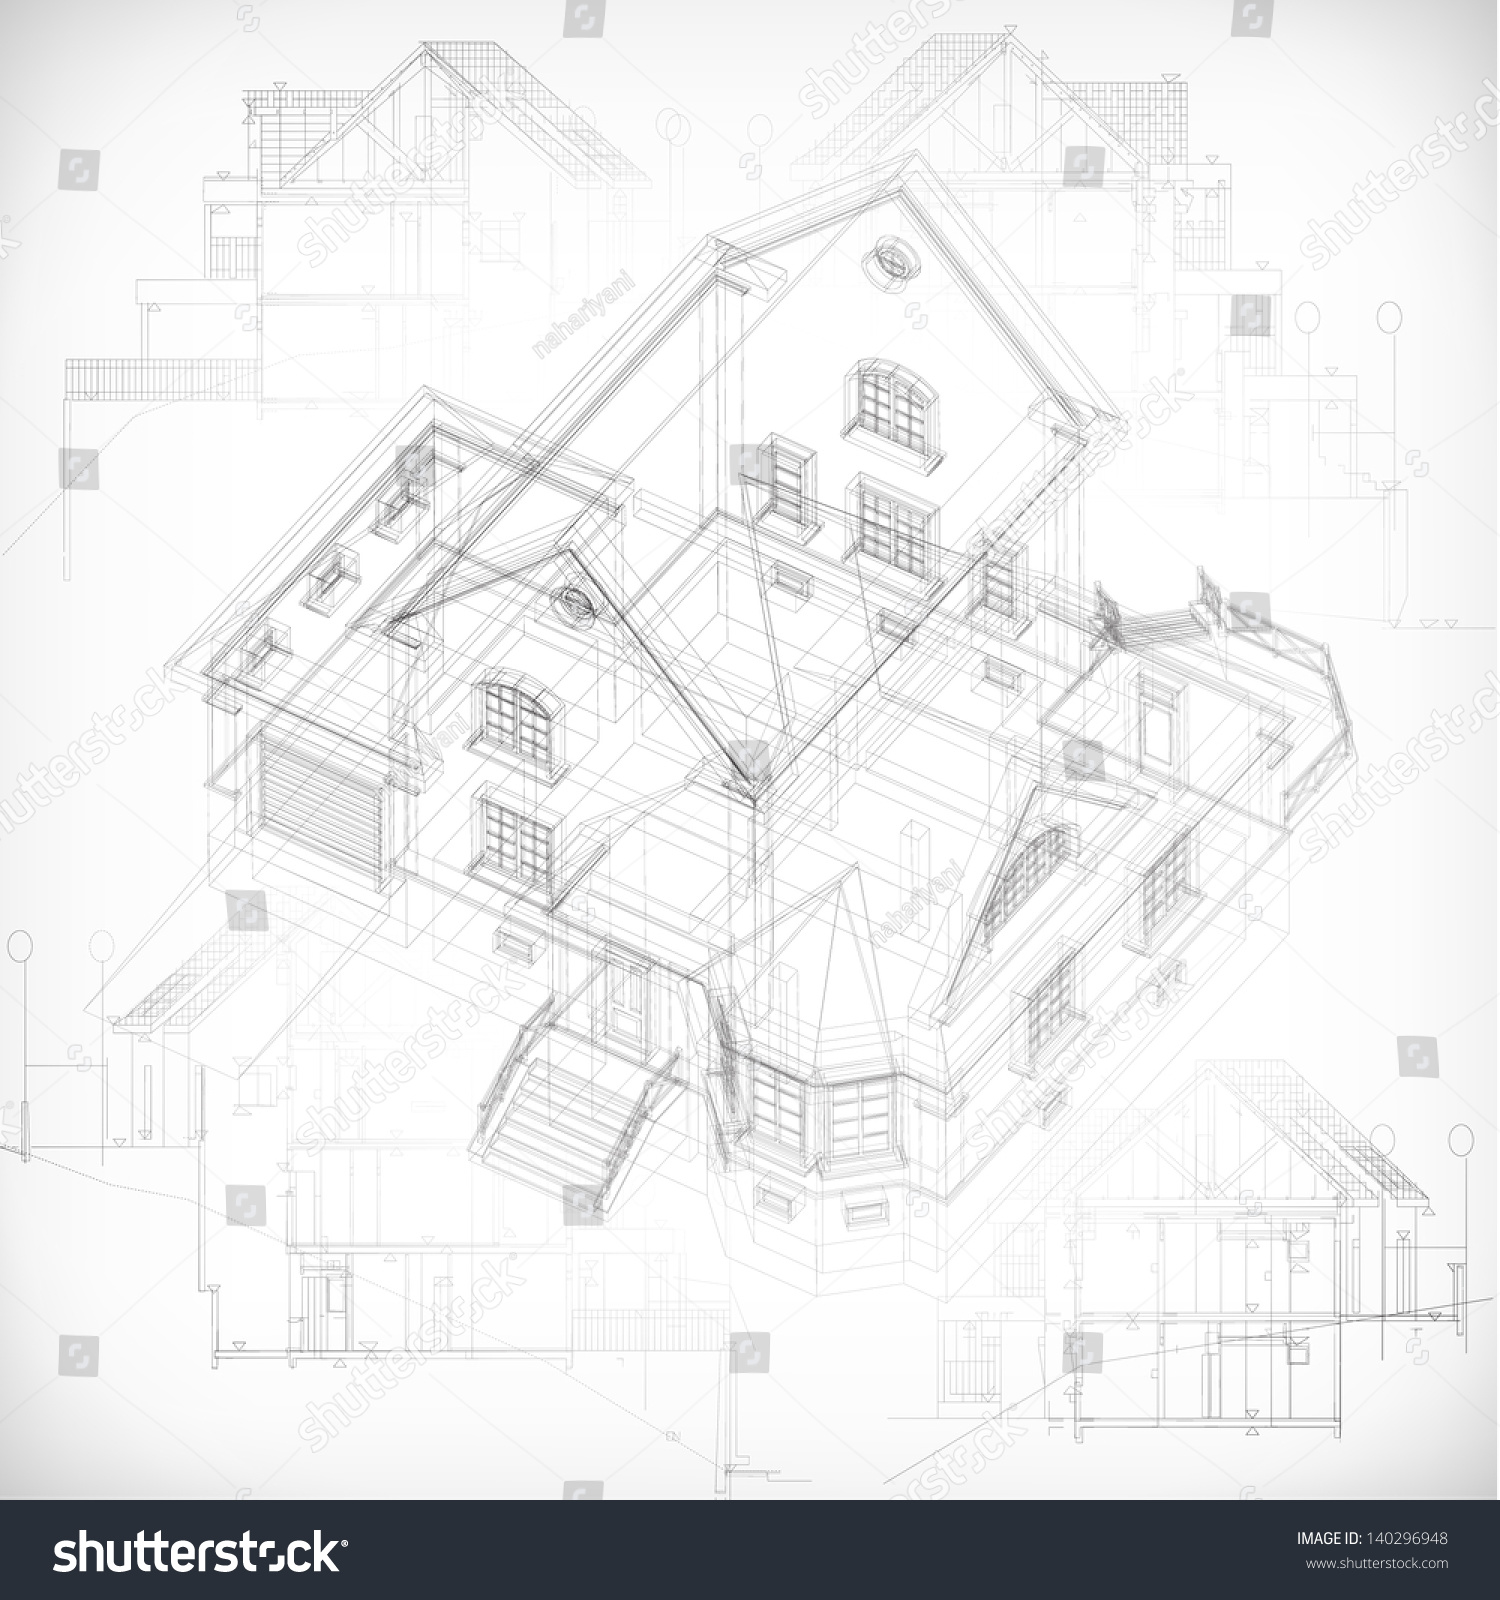 Picture Book Illustration Making An Architectural Model: Architectural Background With A 3d Building Model. Vector